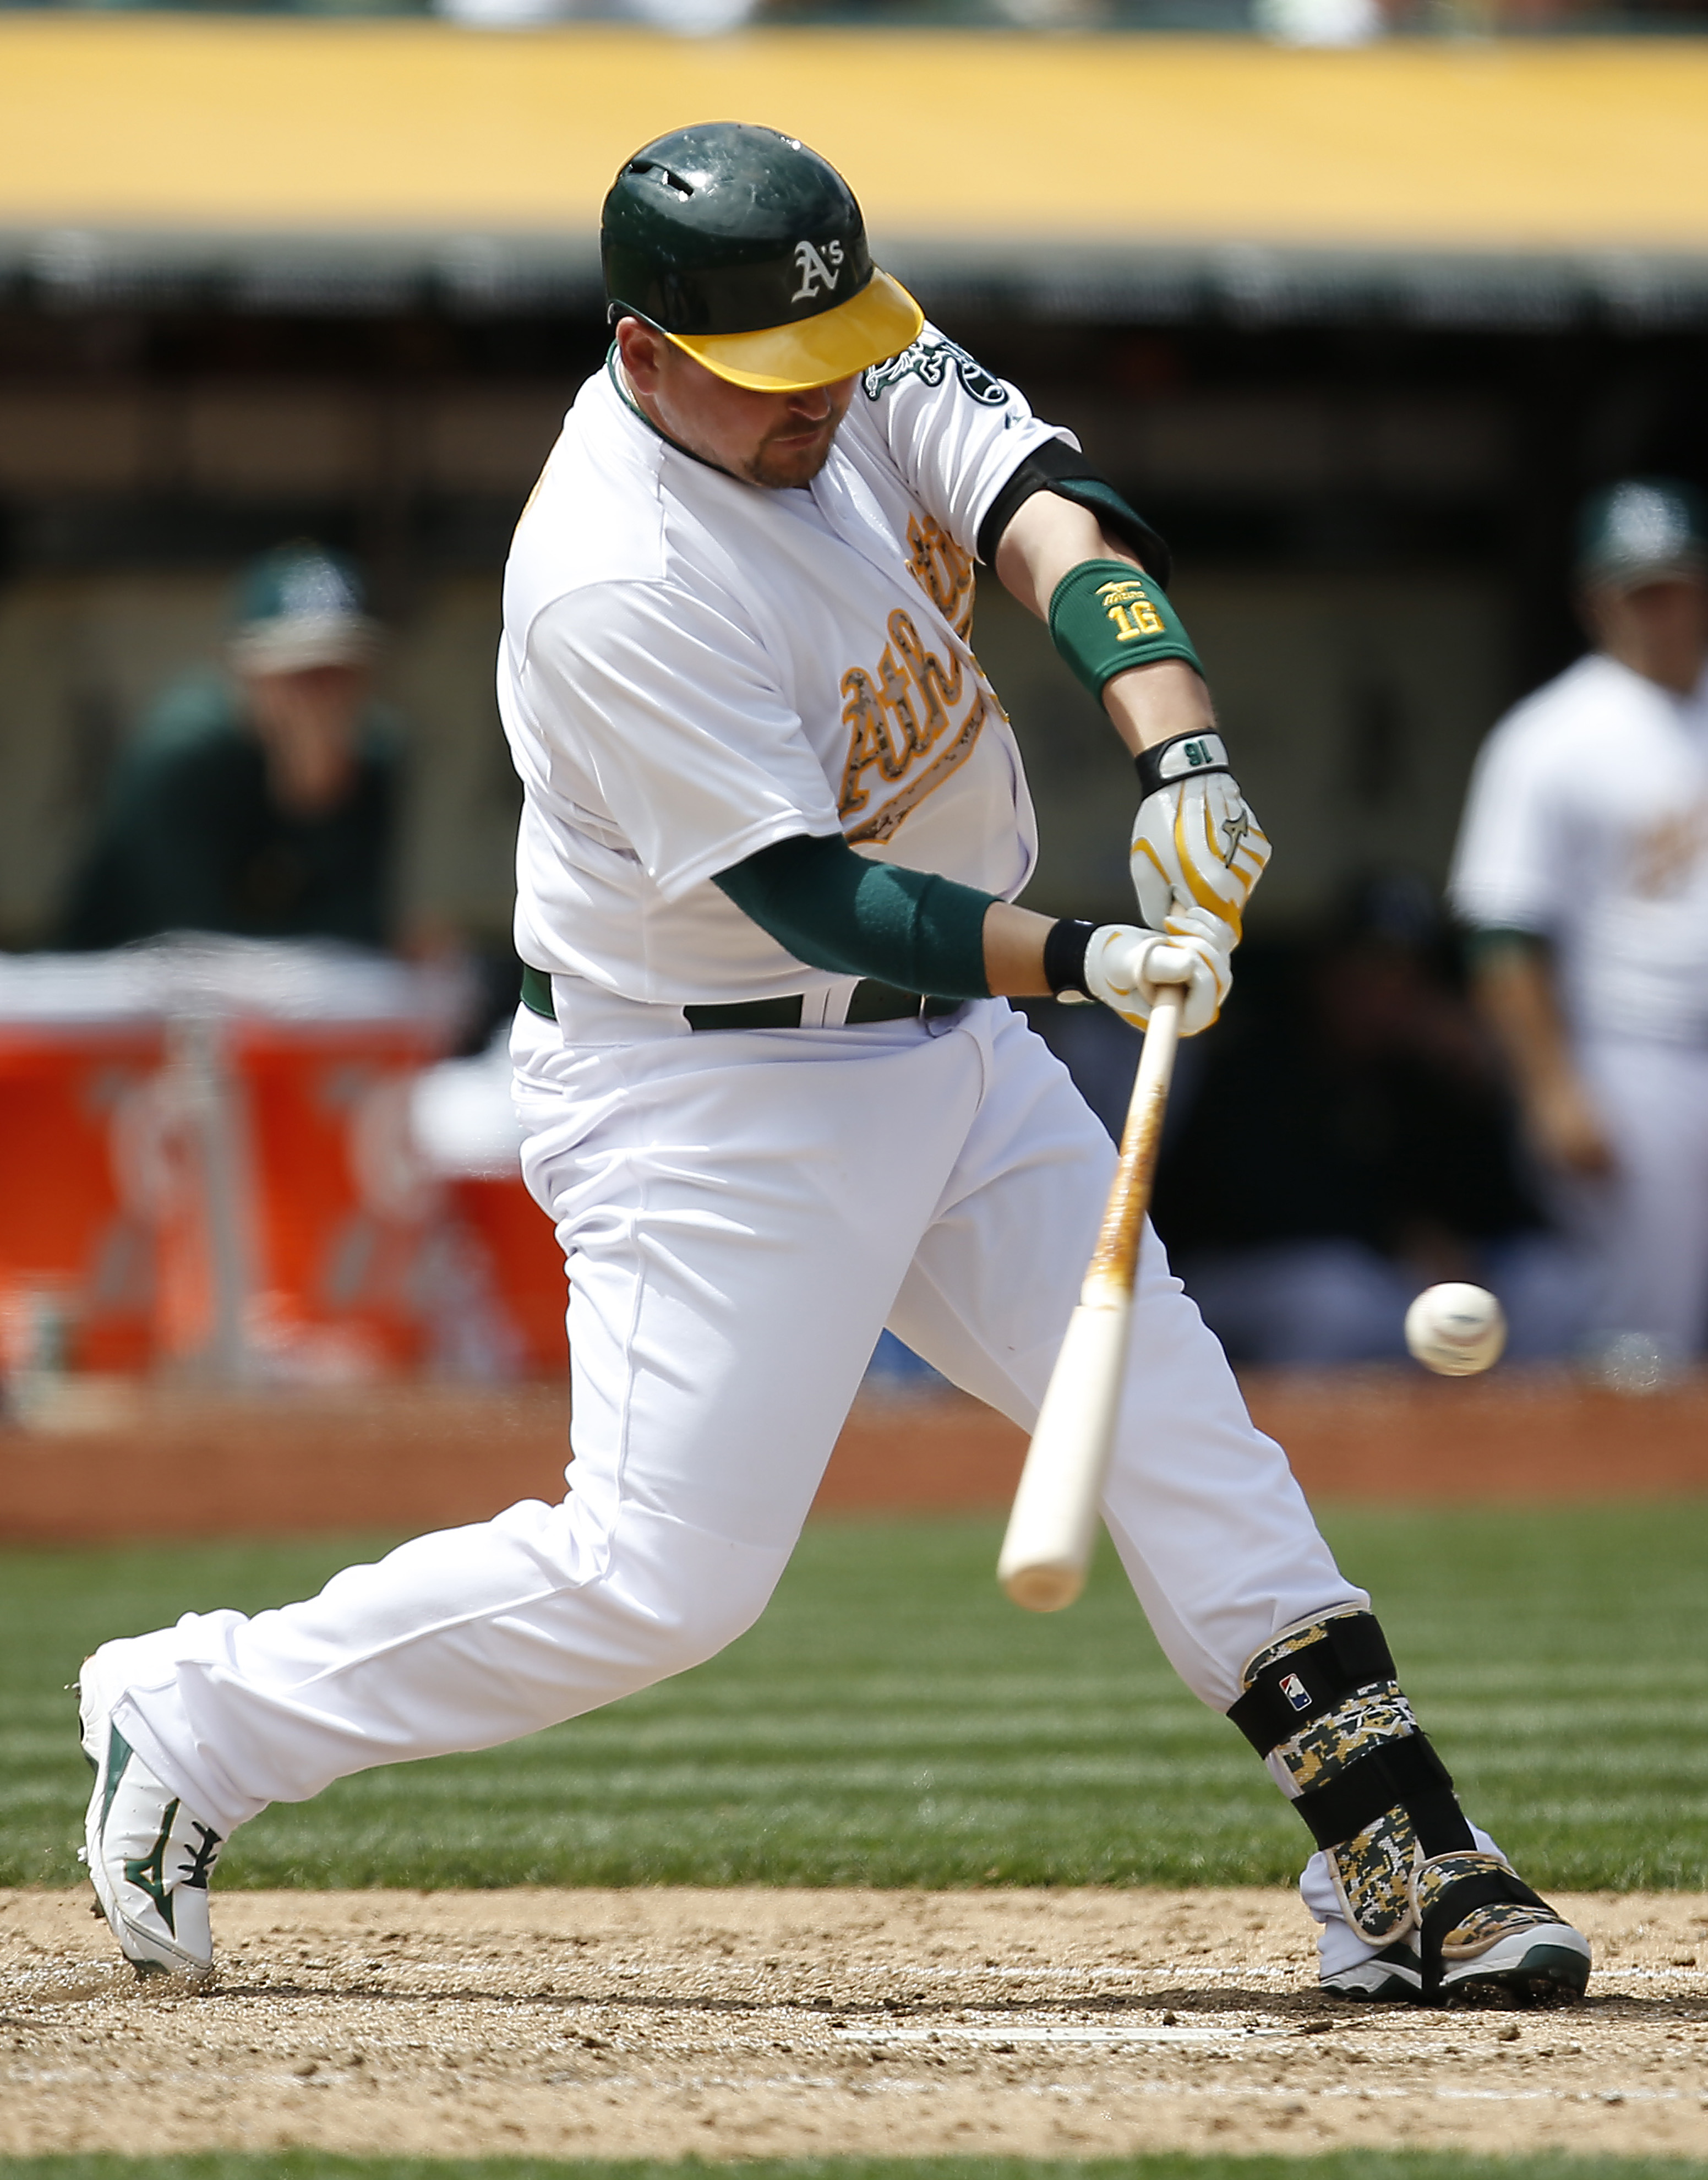 Oakland Athletics' Billy Butler hits a single to drives in a run against the Detroit Tigers during the sixth inning of a baseball game Monday, May 25, 2015, in Oakland, Calif. (AP Photo/Tony Avelar)